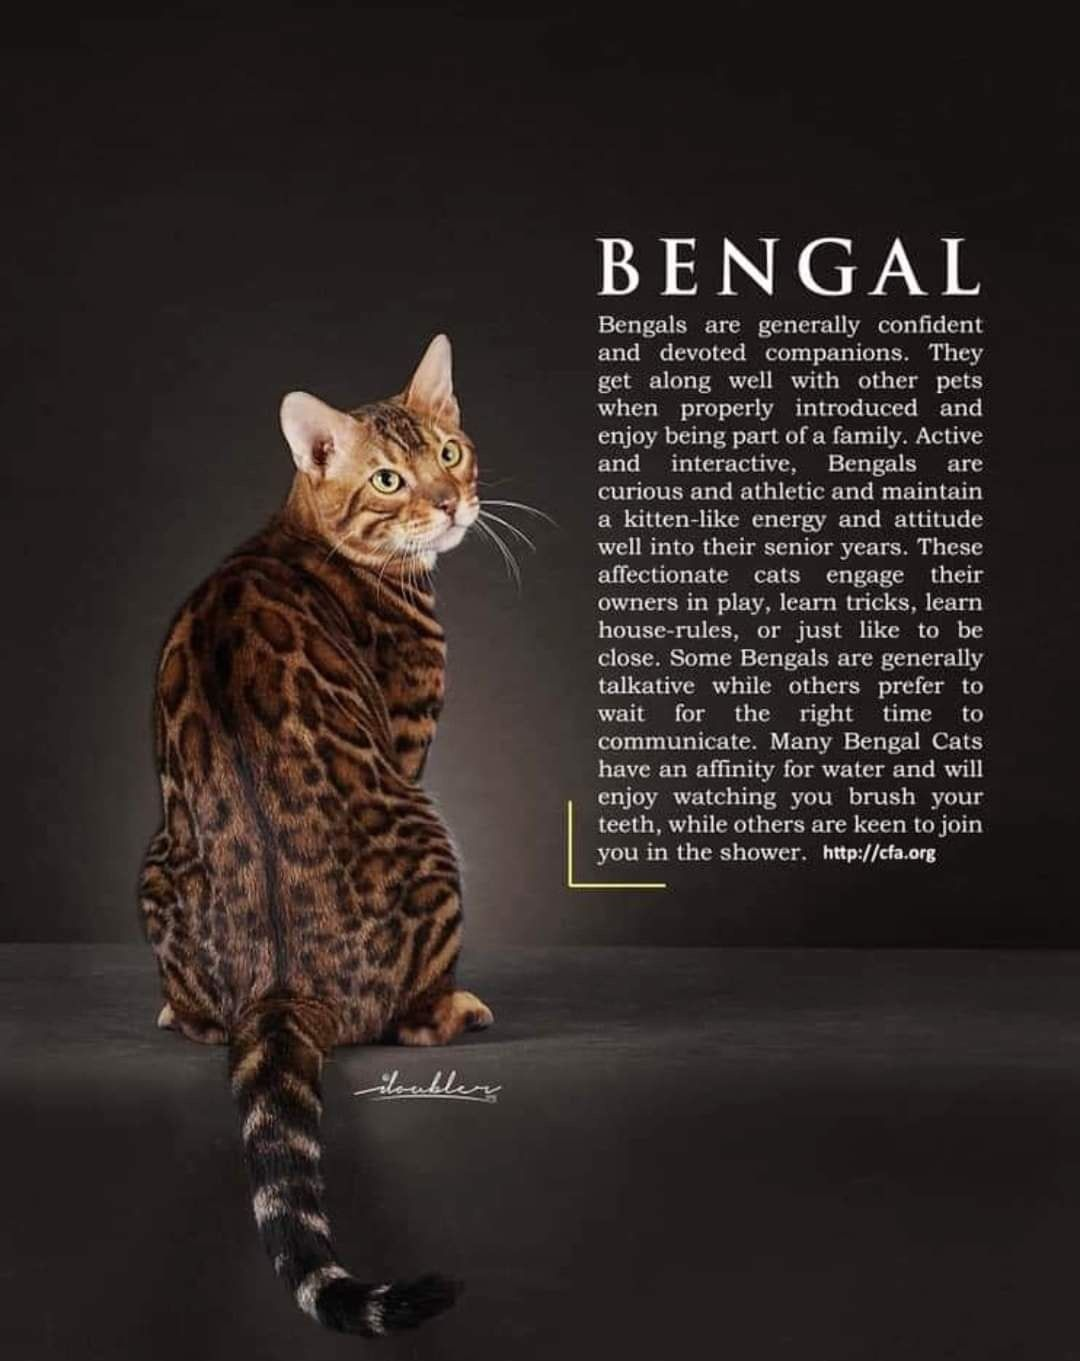 Bengal Cats For Sale (With images) Bengal cat, Bengal